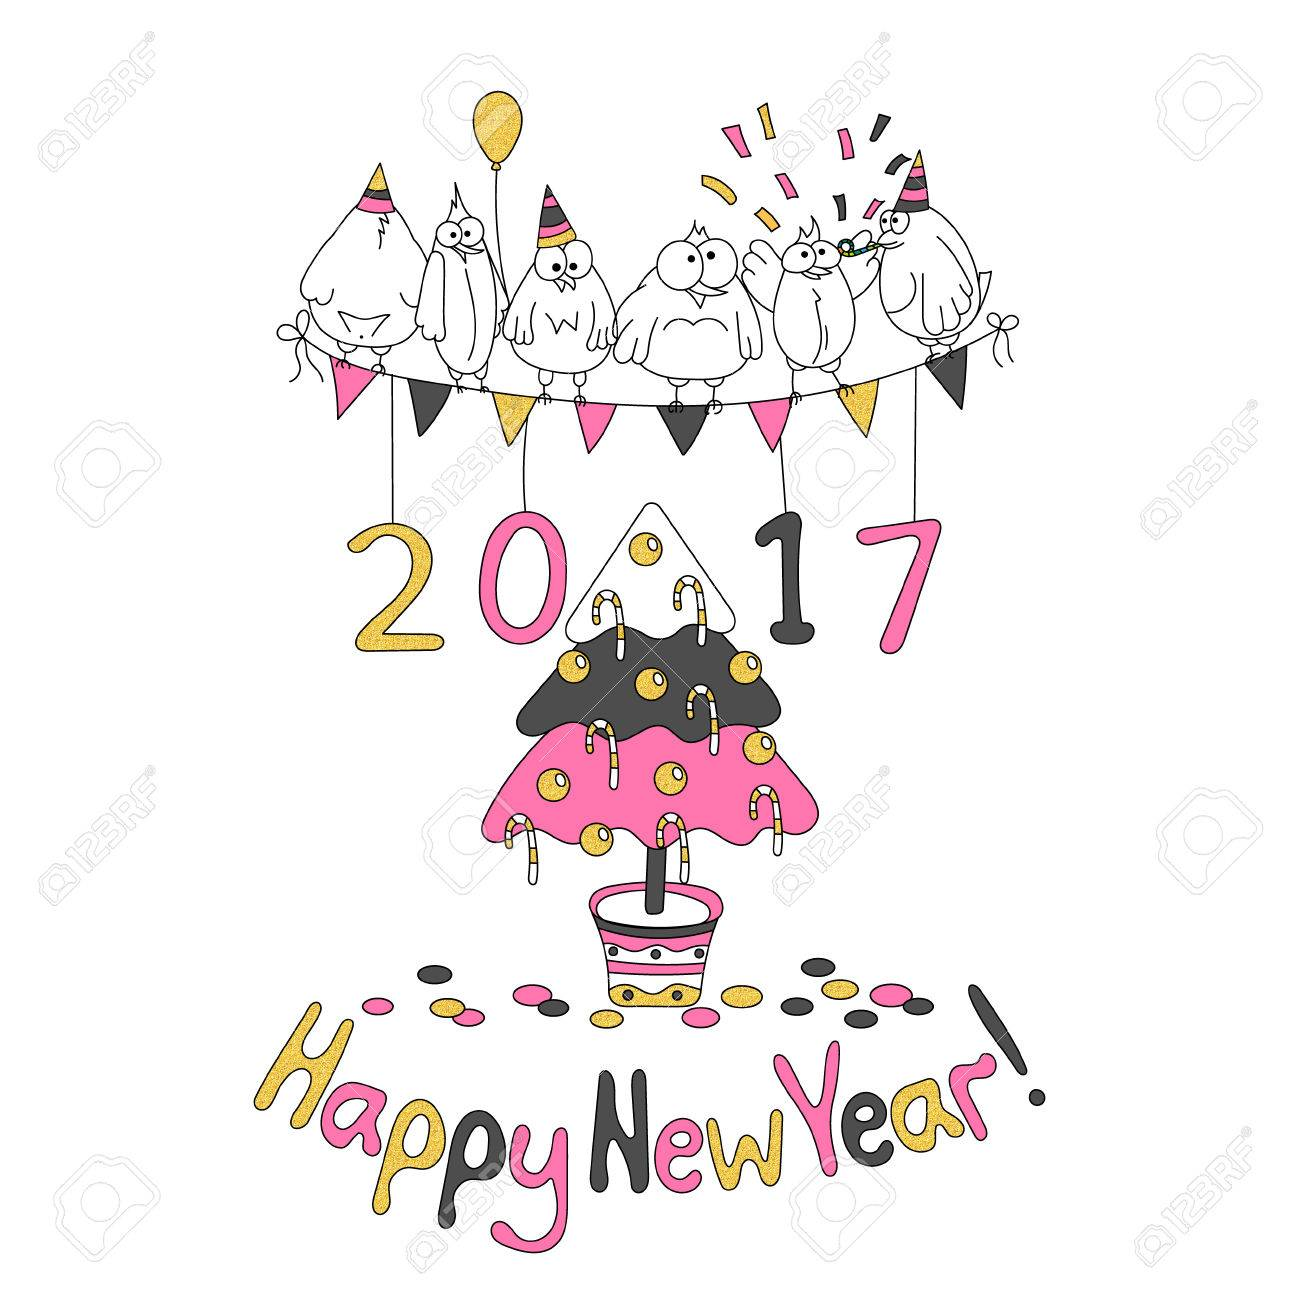 Happy New Year Greeting Card With Cartoon Funny Birds. Hand Draw Vector  Illustration. Trendy